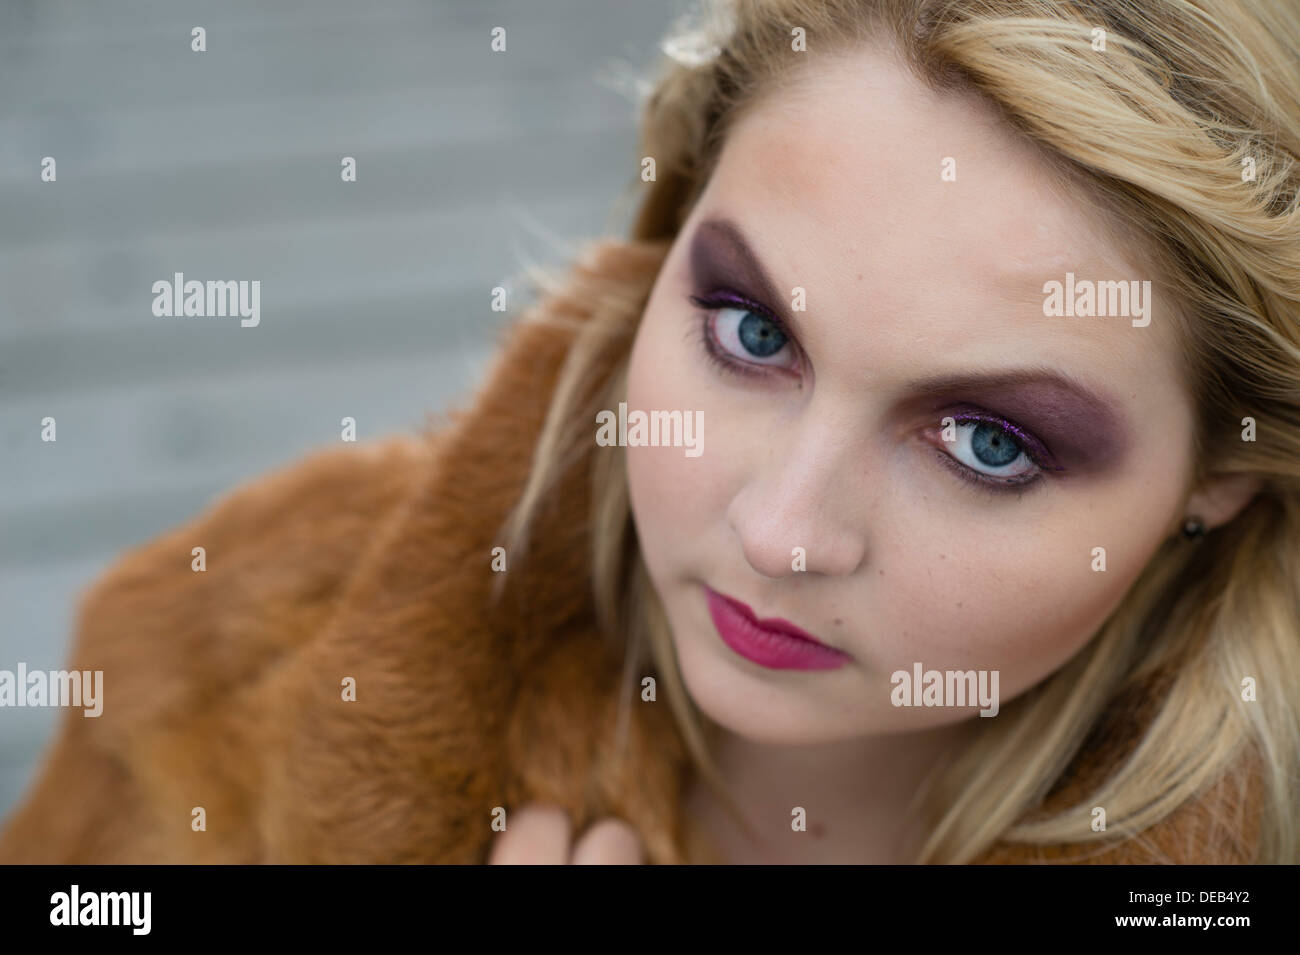 a young blond blonde woman teenage girl wearing a fur coat looking at camera with big eyes, UK - Stock Image